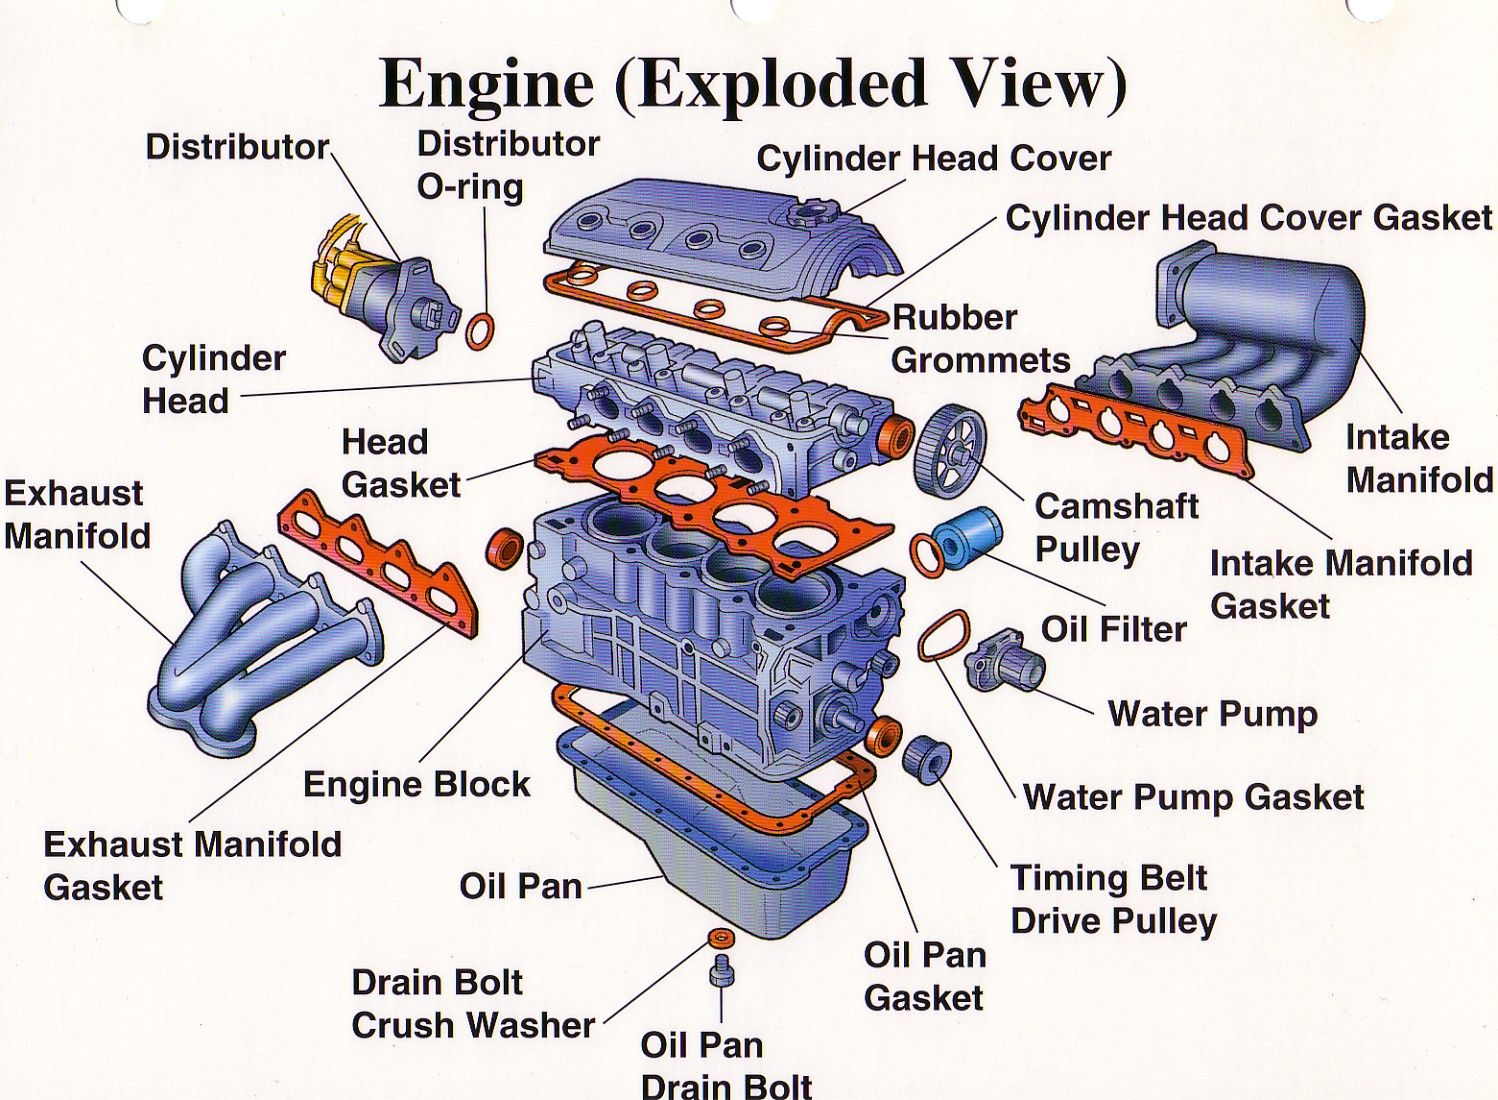 engine parts hdabob com what makes the engine tick engines rh pinterest com engine parts diagram 1996 land cruiser engine parts diagram for mf 1010 free